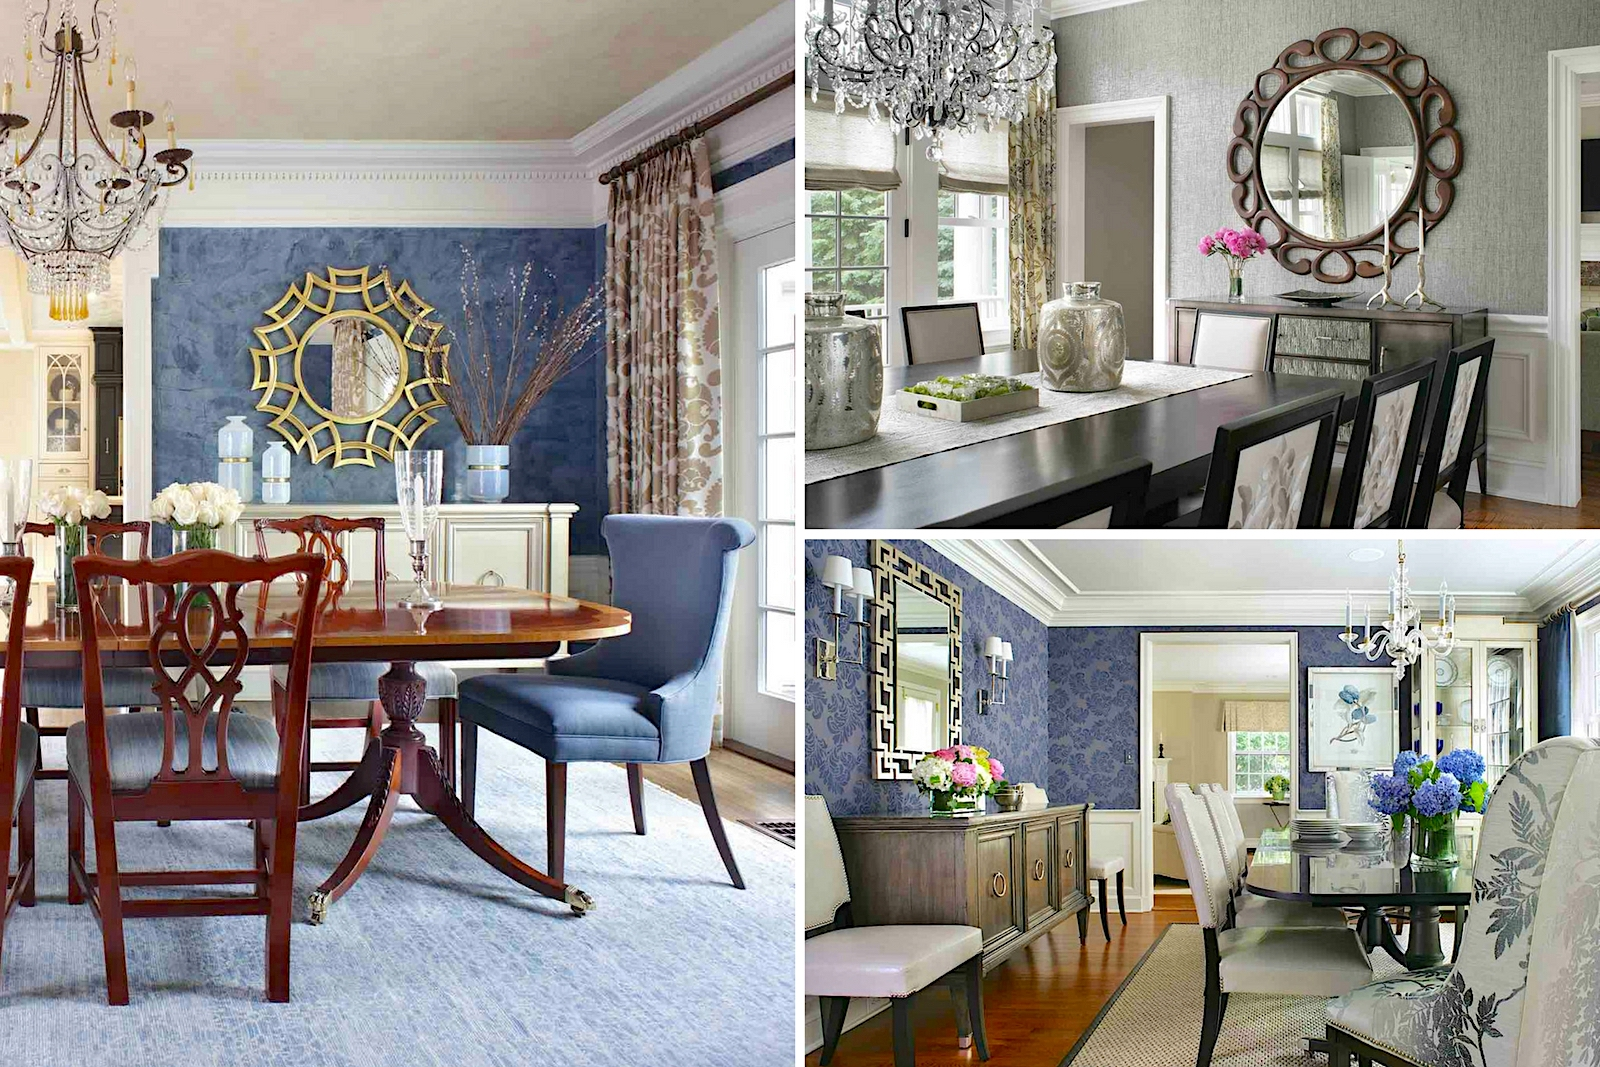 How to Use Mirrors in Dining Room Decor